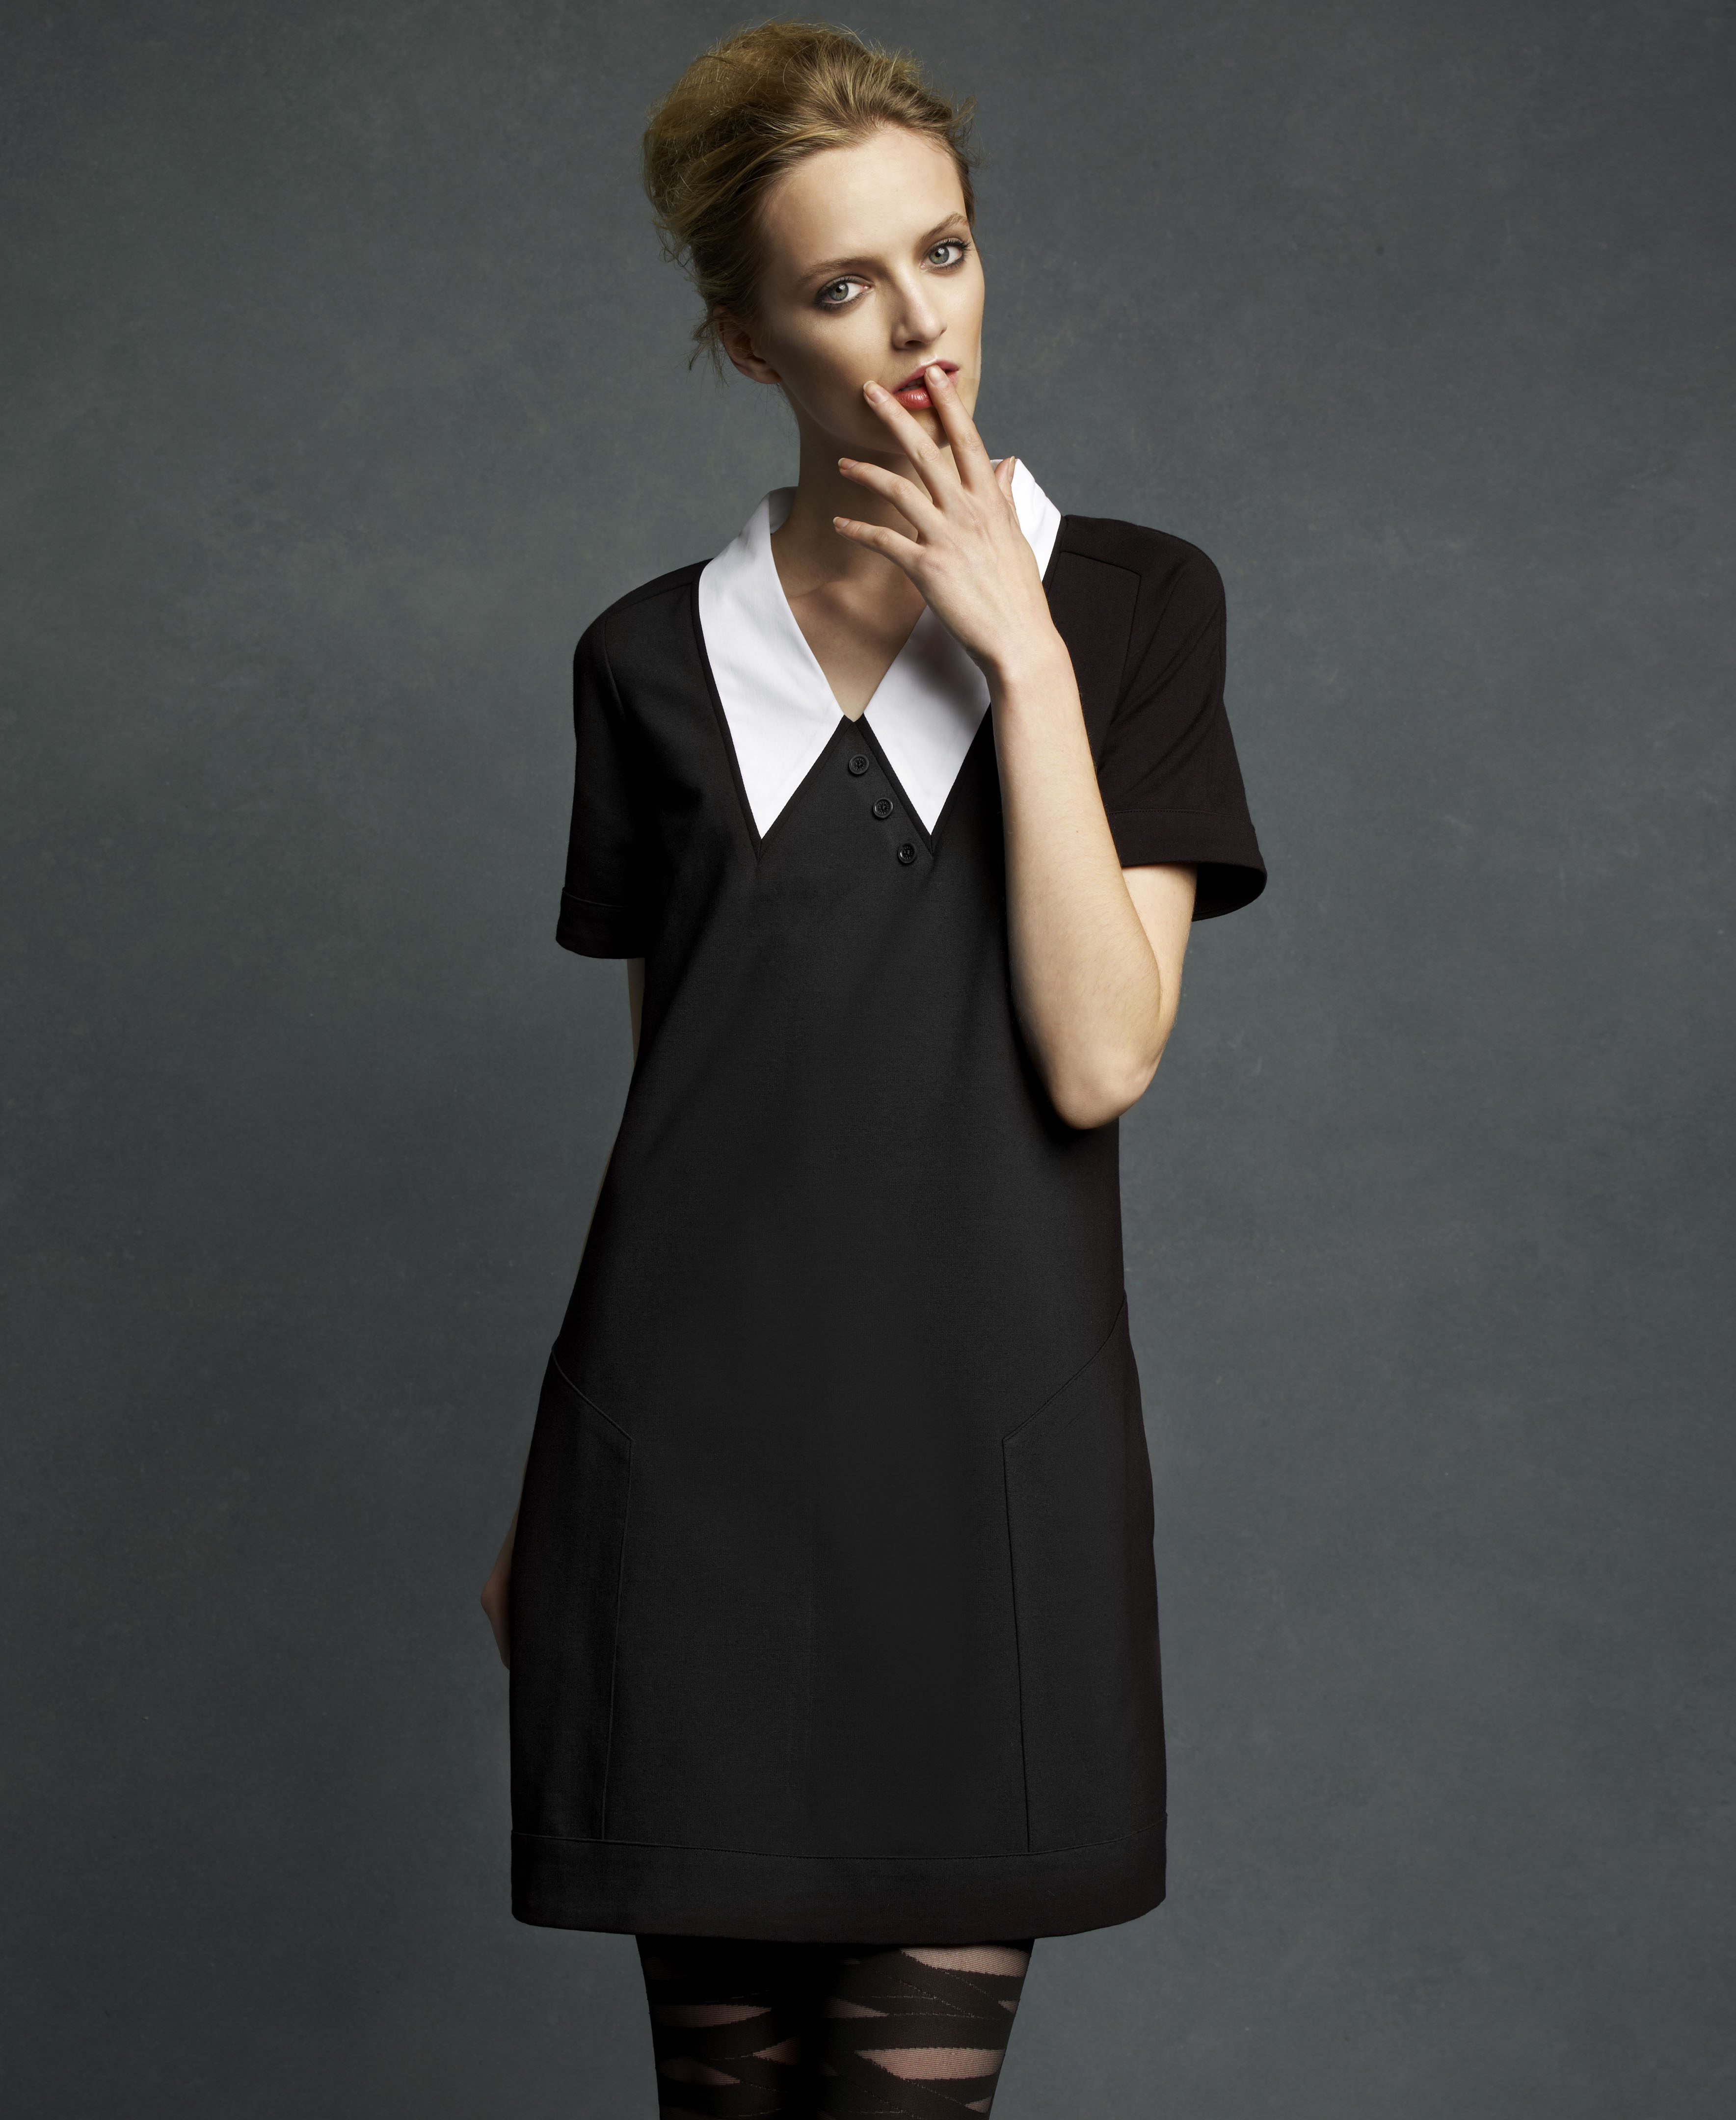 Macy s goes masstige with the karl lagerfeld for impulse for Macy black dress wear to wedding